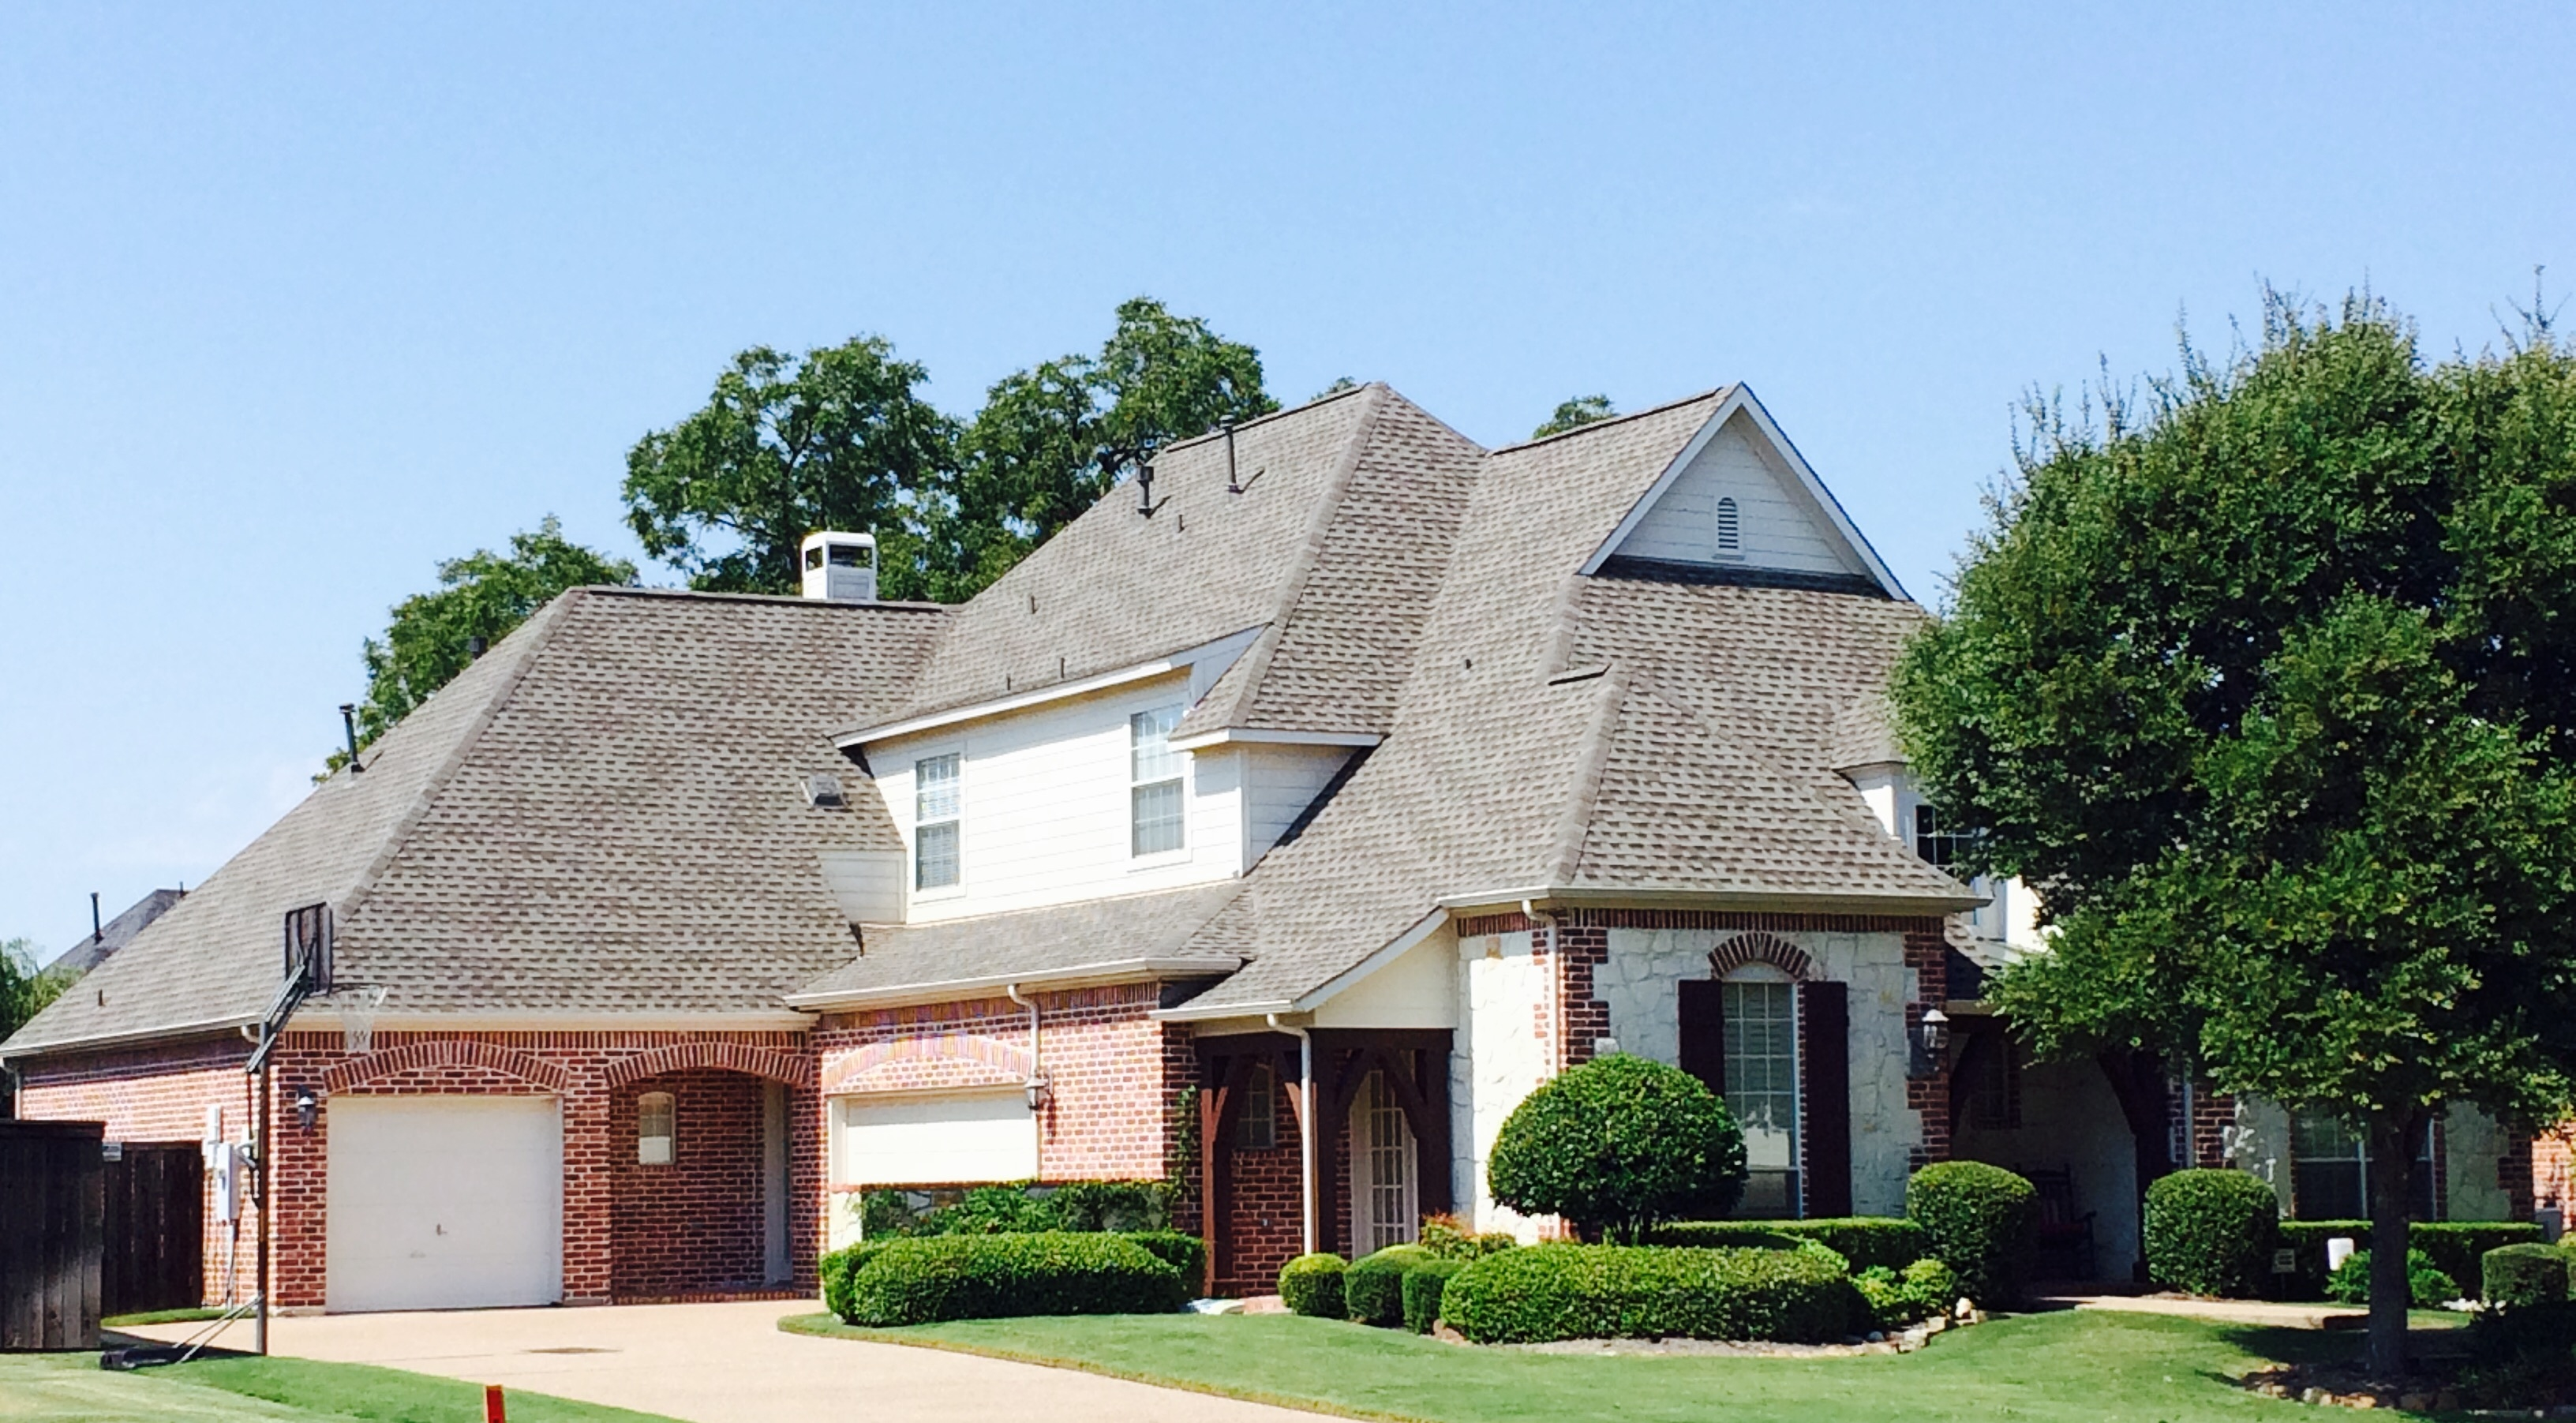 Integrity roofing construction keller texas tx for Integrity roofing and exteriors